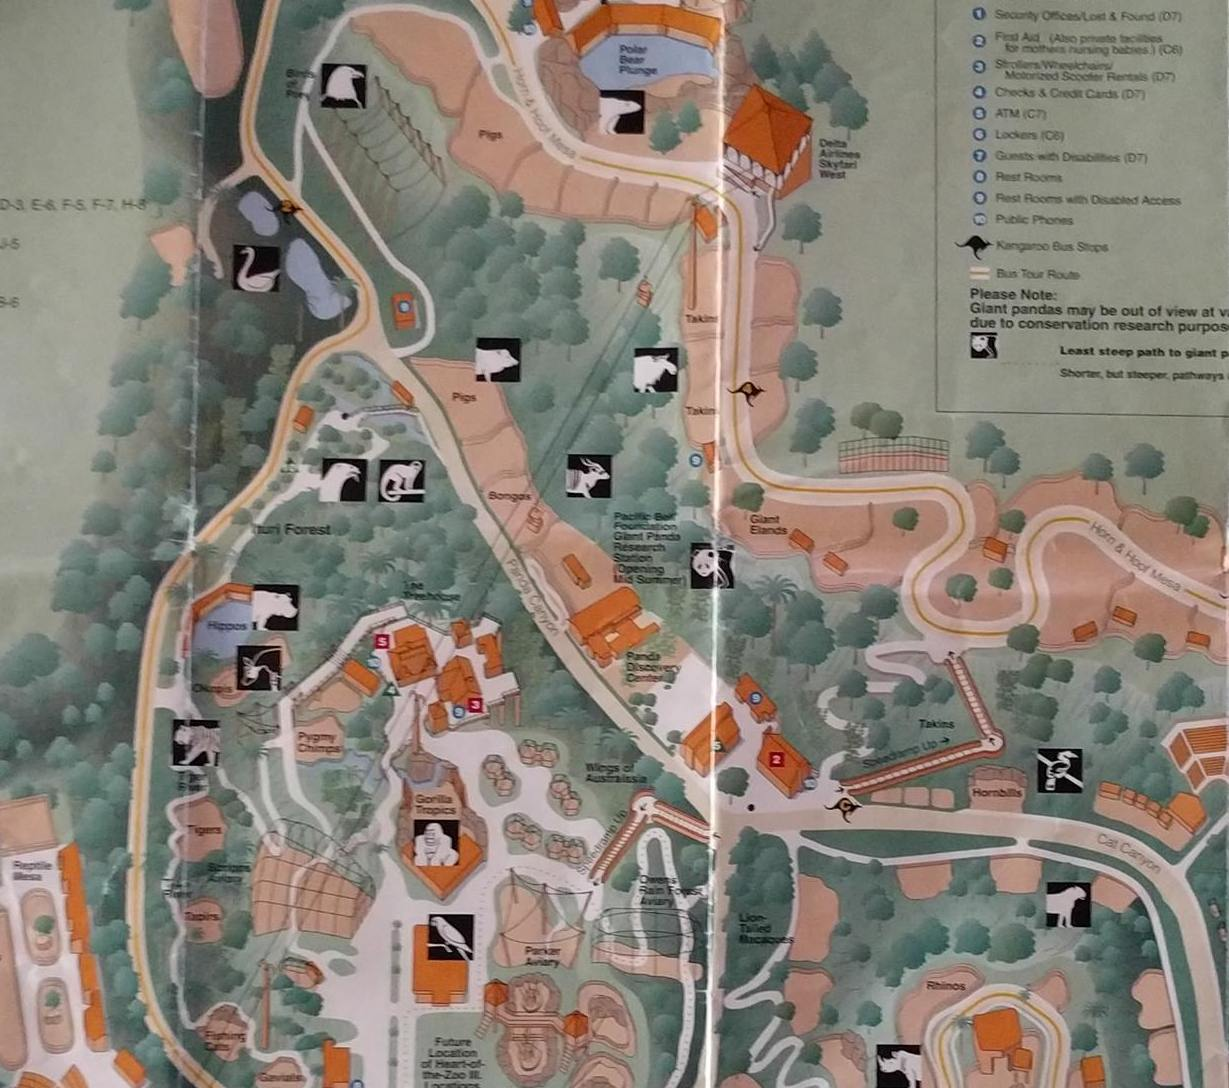 HD Decor Images » Vintage San Diego Zoo Maps   YEW      Vintage San Diego Zoo Maps on imgur  I geek out on this shit